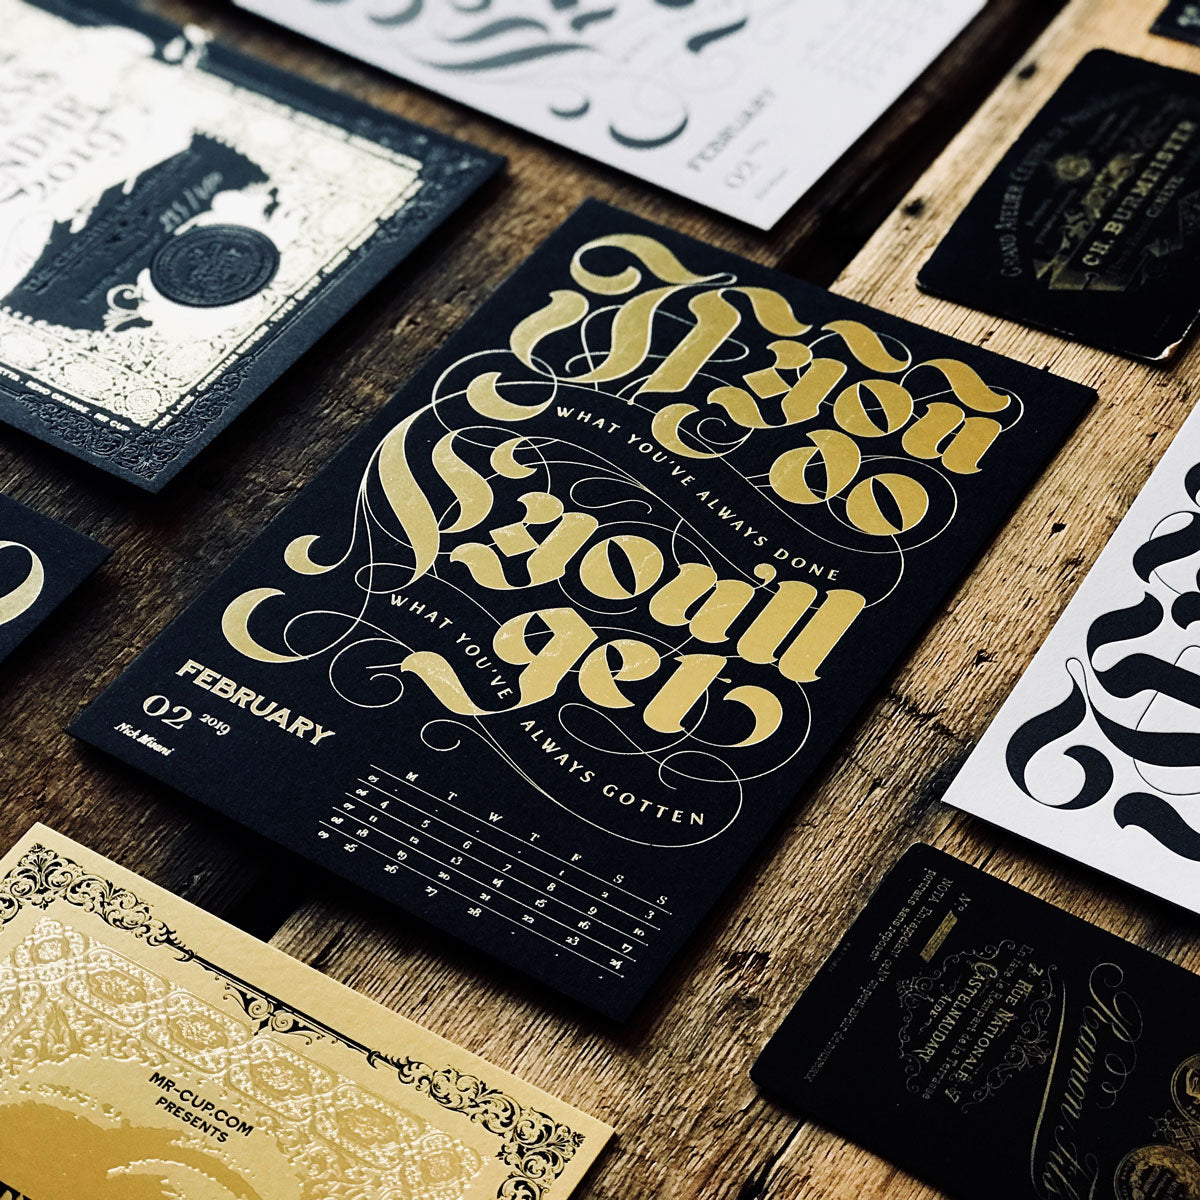 2019 letterpress calendar Artist's proof 02 - hot foil - MR CUP